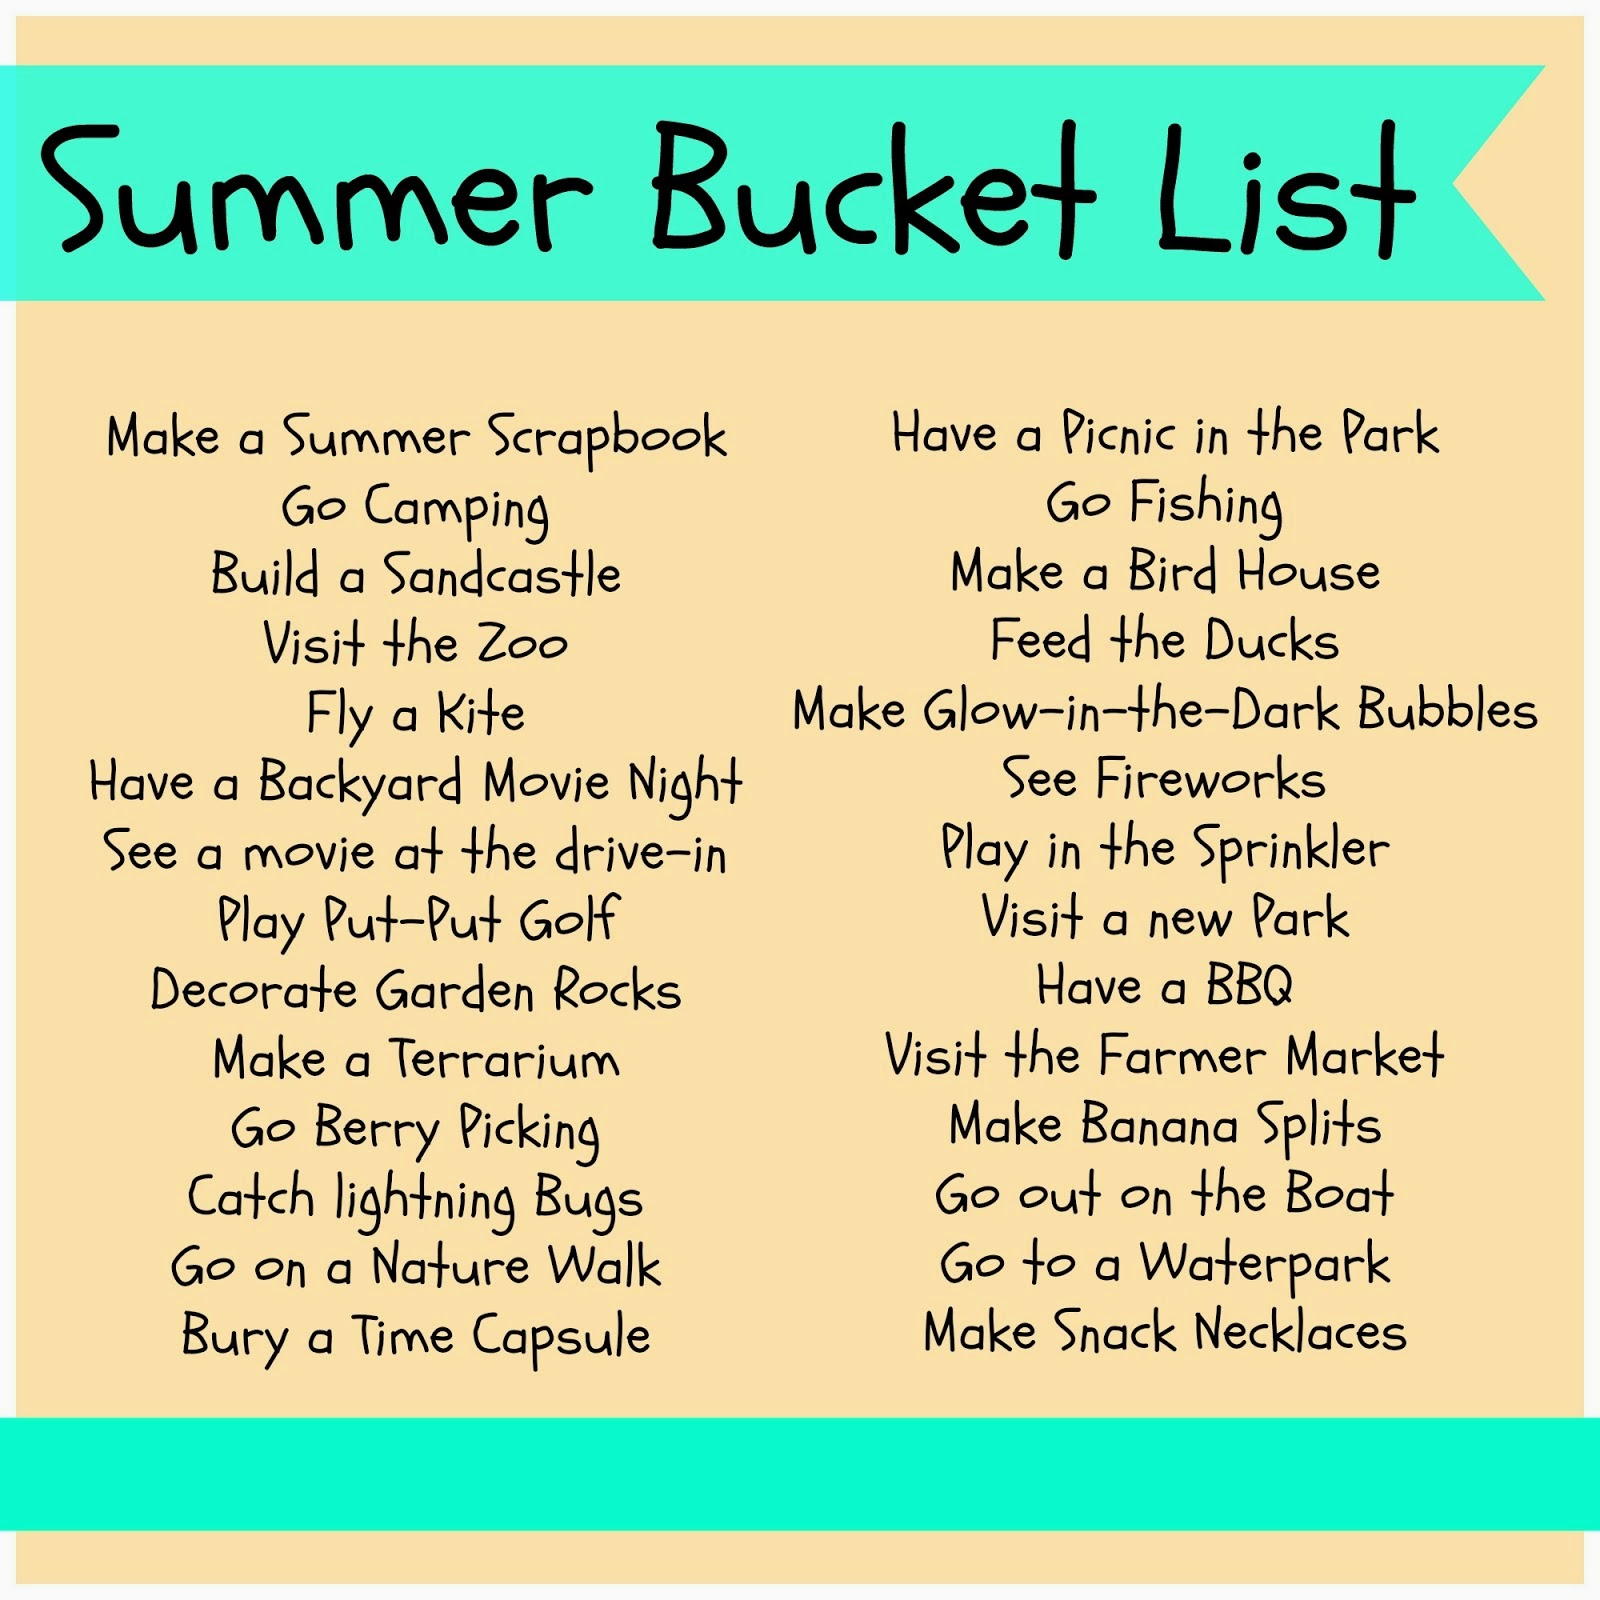 Rosana´s English Blog: 100 THINGS TO DO IN SUMMER